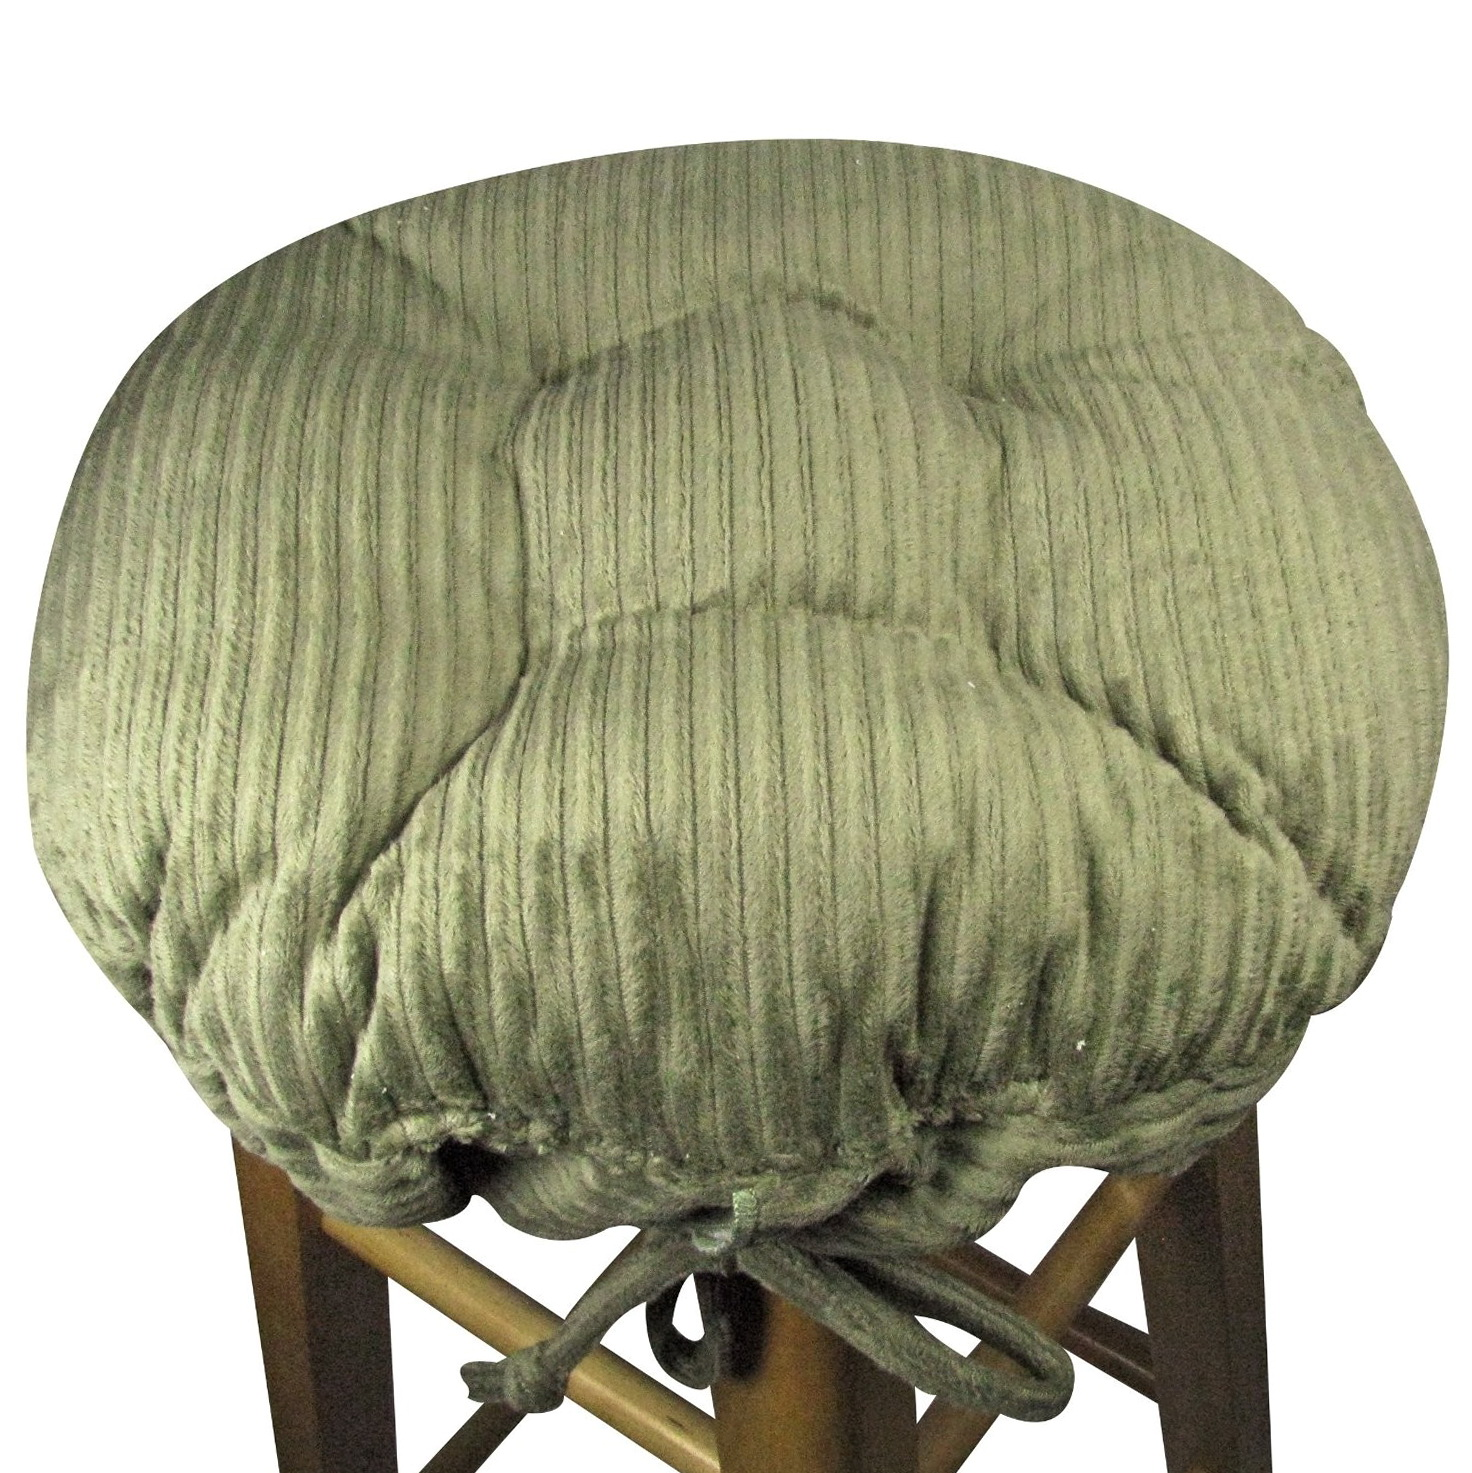 Round Bar Stool Cushions Sale Home Design Ideas : round bar stool cushions sale from www.theenergylibrary.com size 1472 x 1473 jpeg 687kB